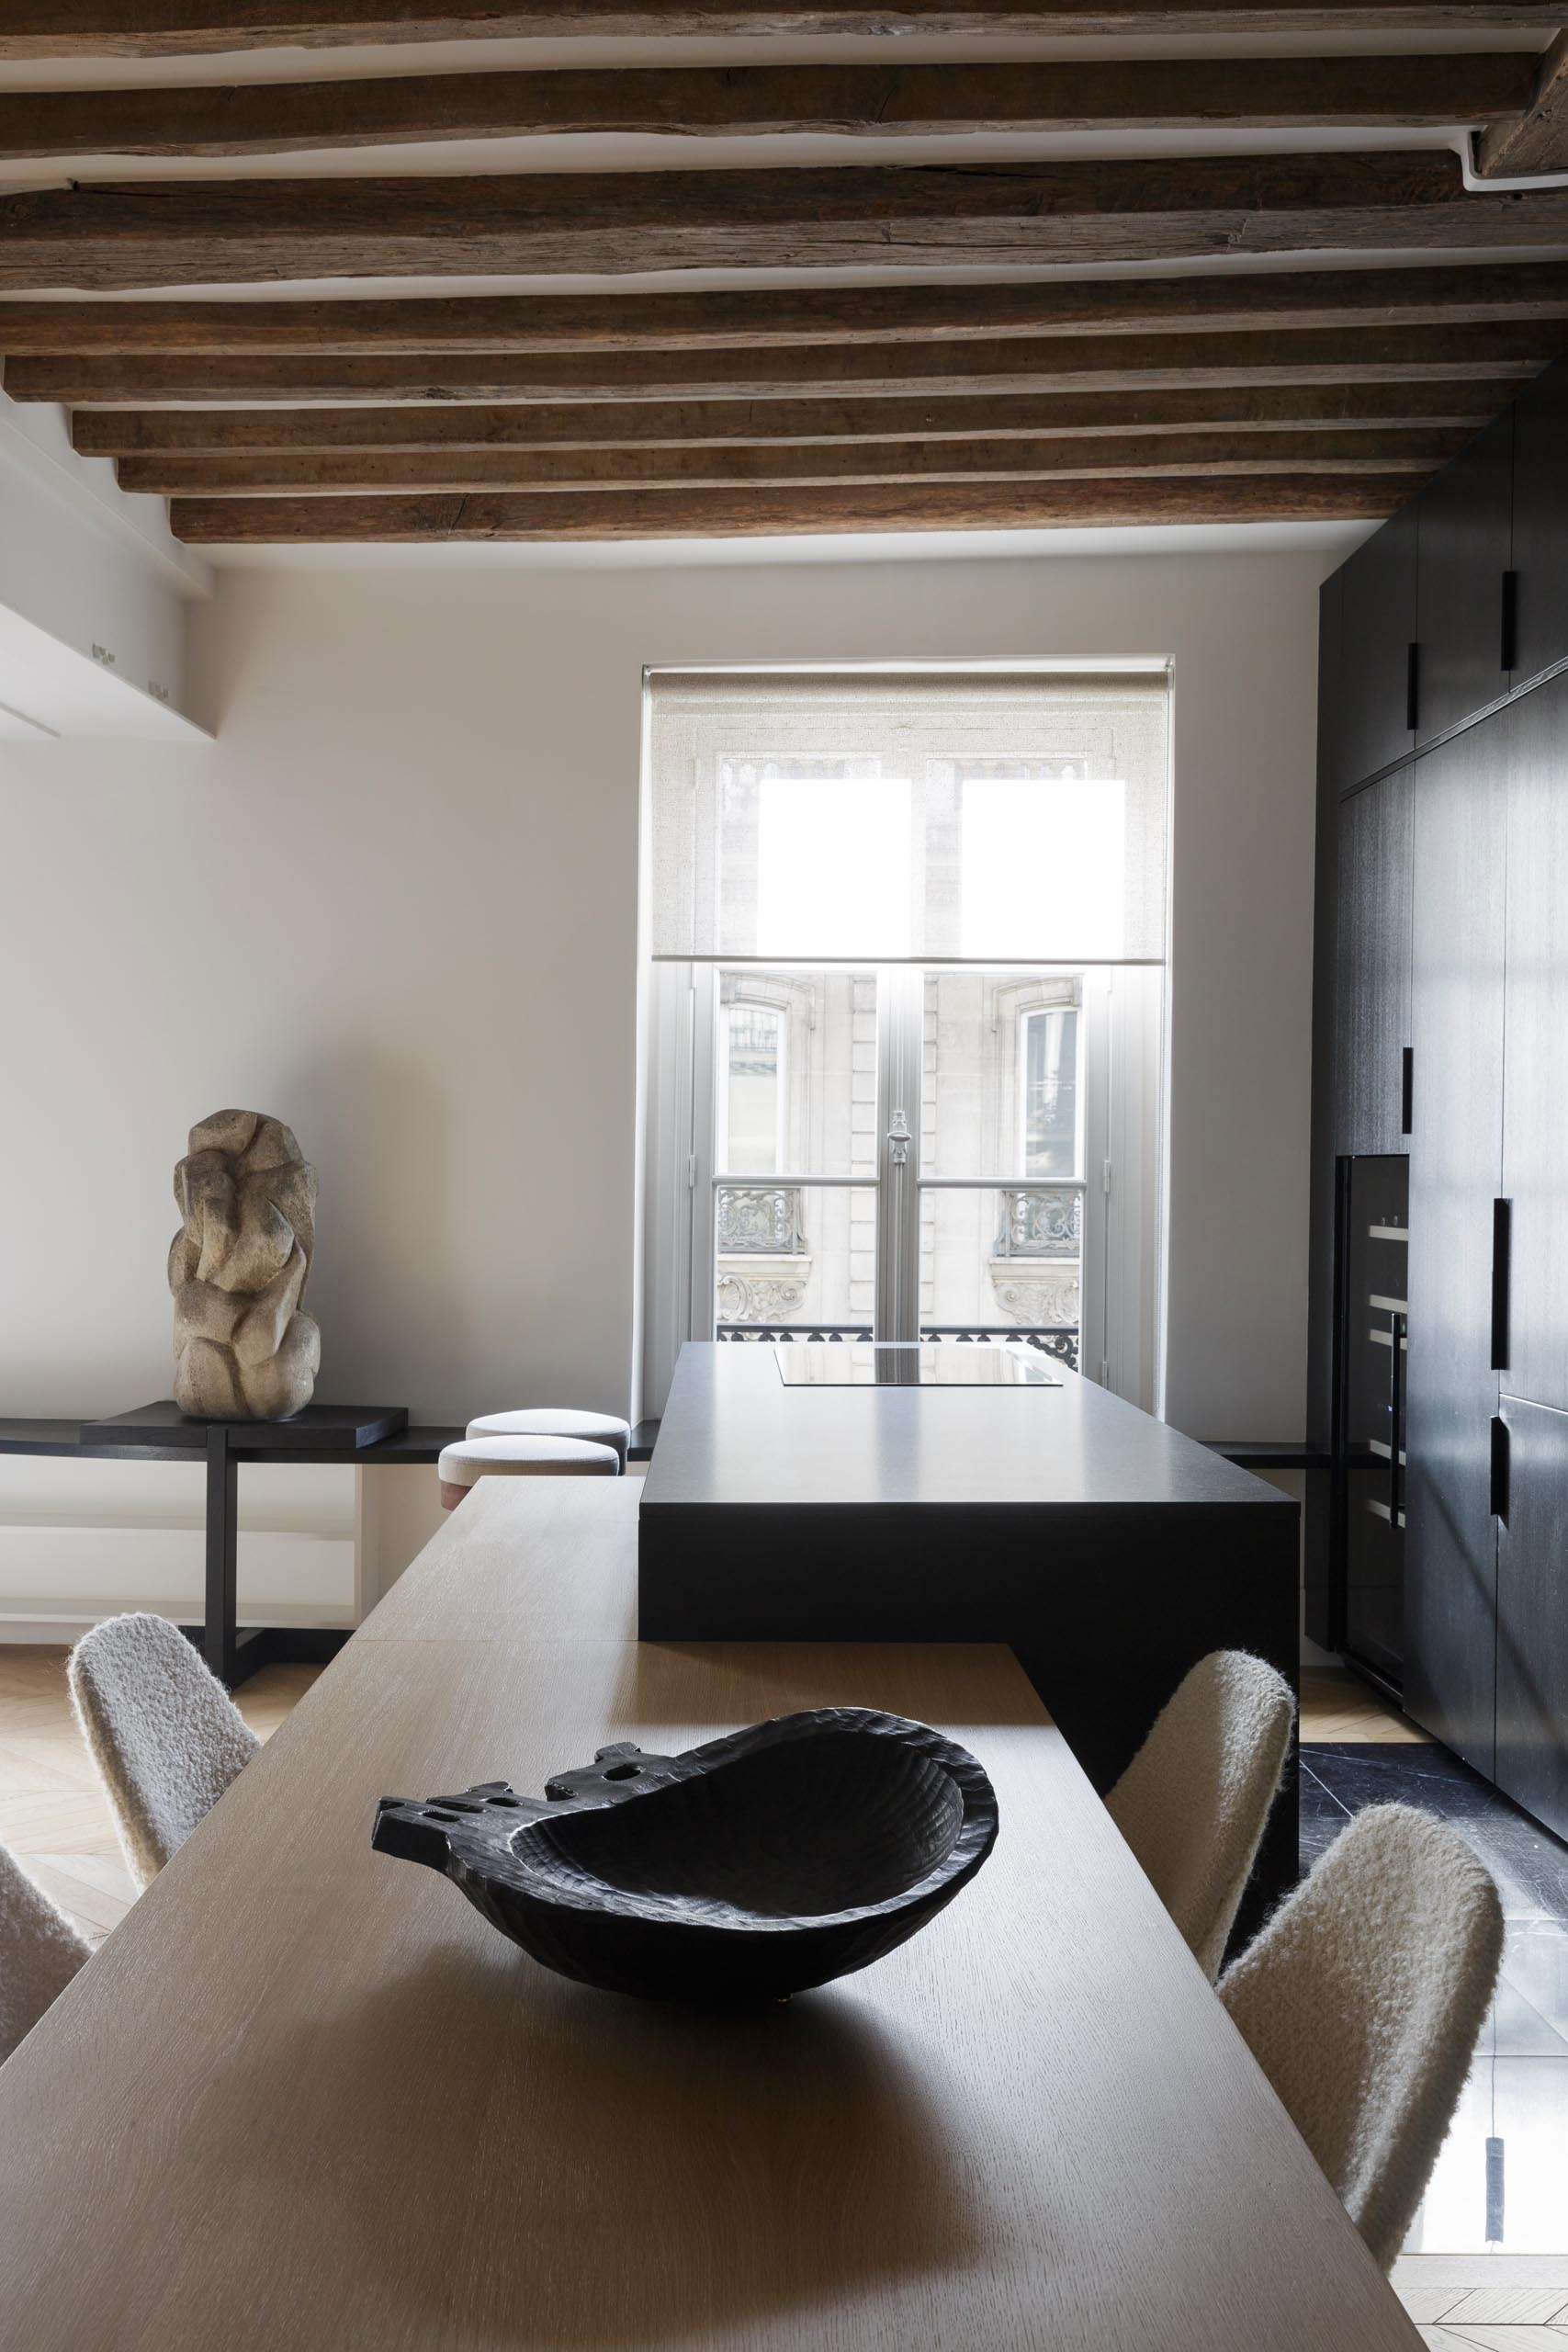 A modern matte black kitchen with a black appliances, exposed wood beams, and an island with a built-in dining table.